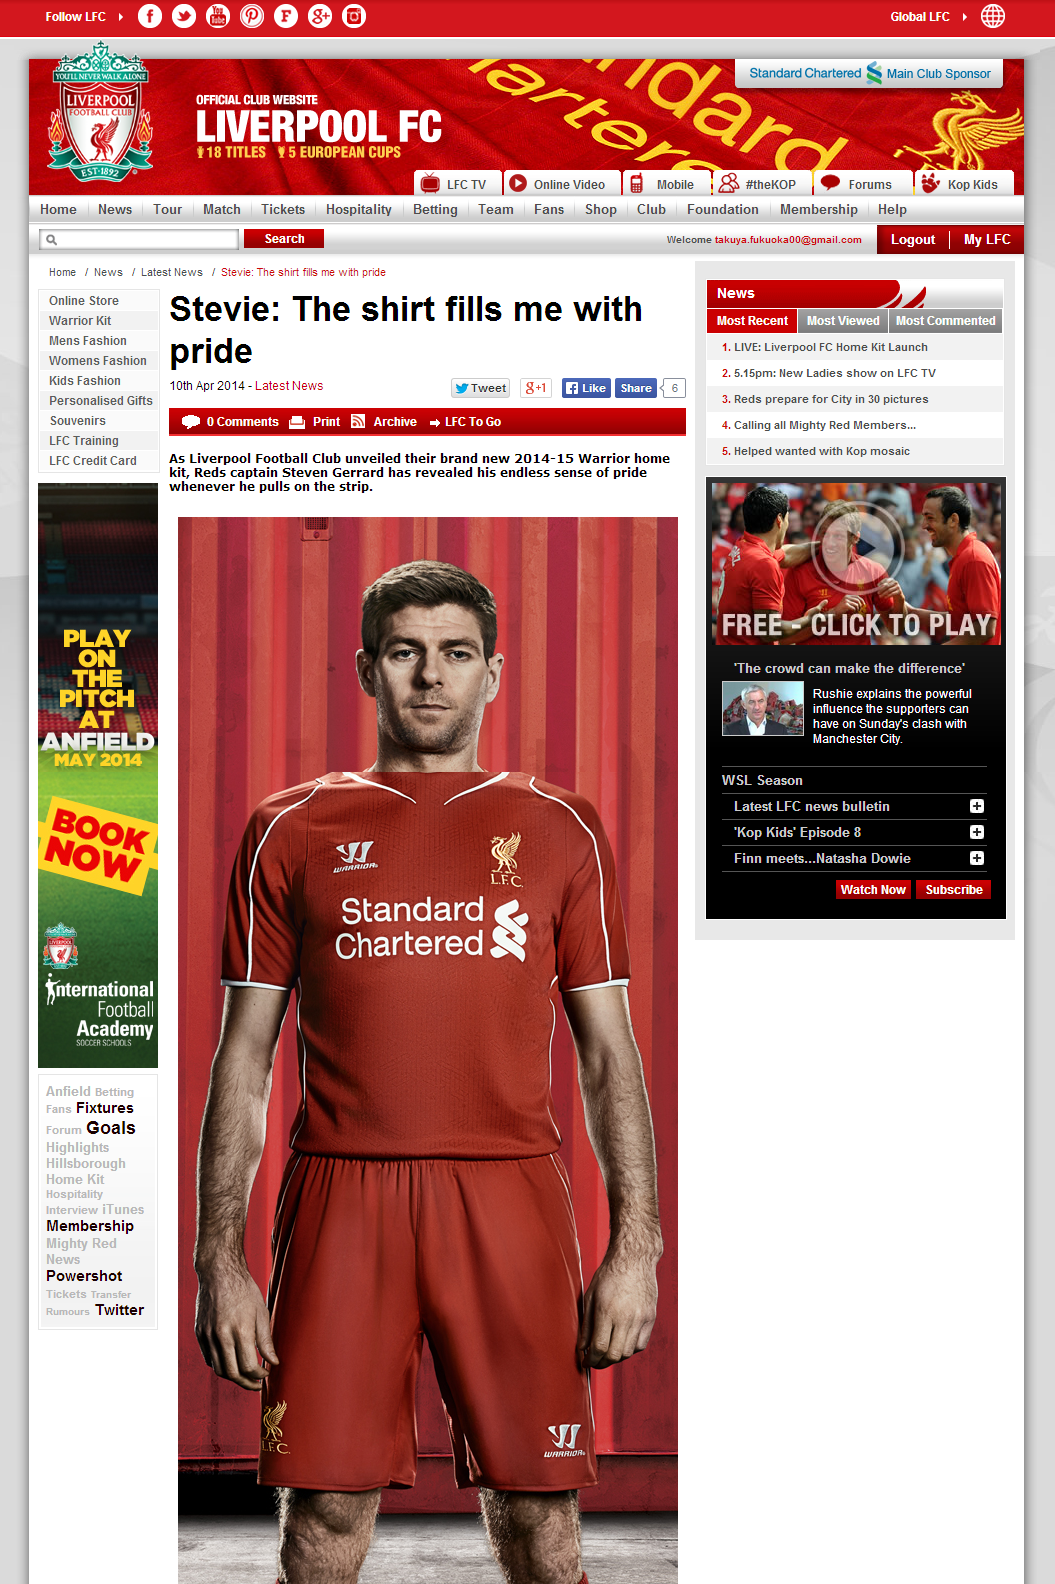 140411_Stevie-The-shirt-fills-me-with-pride-Liverpool-FC